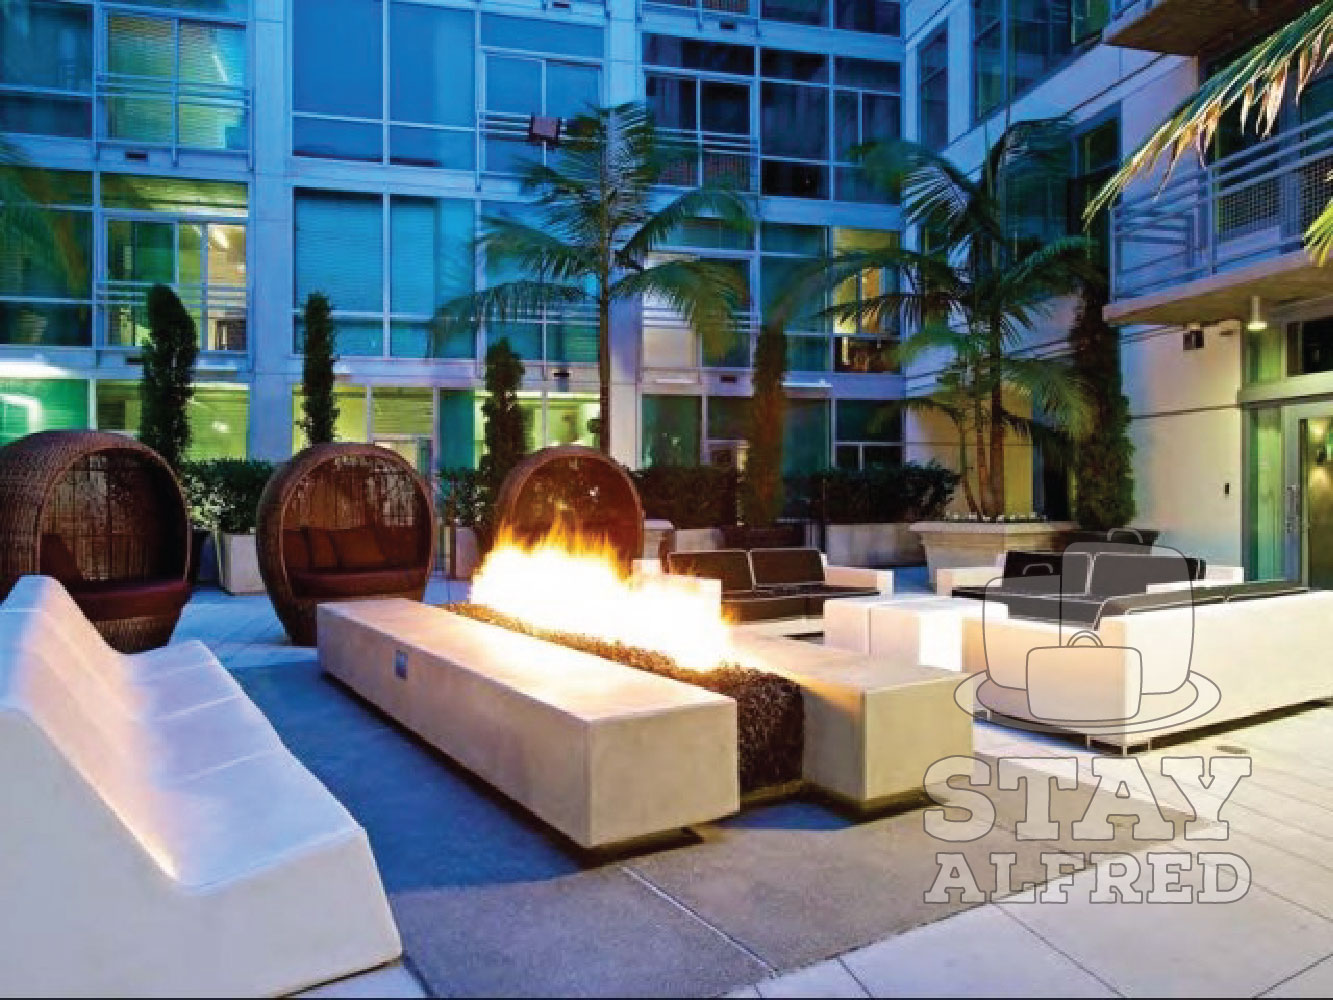 Stay Alfred Opens New Downtown San Diego Vacation Rentals. Stay Alfred Opens New Downtown San Diego Vacation Rentals    Stay